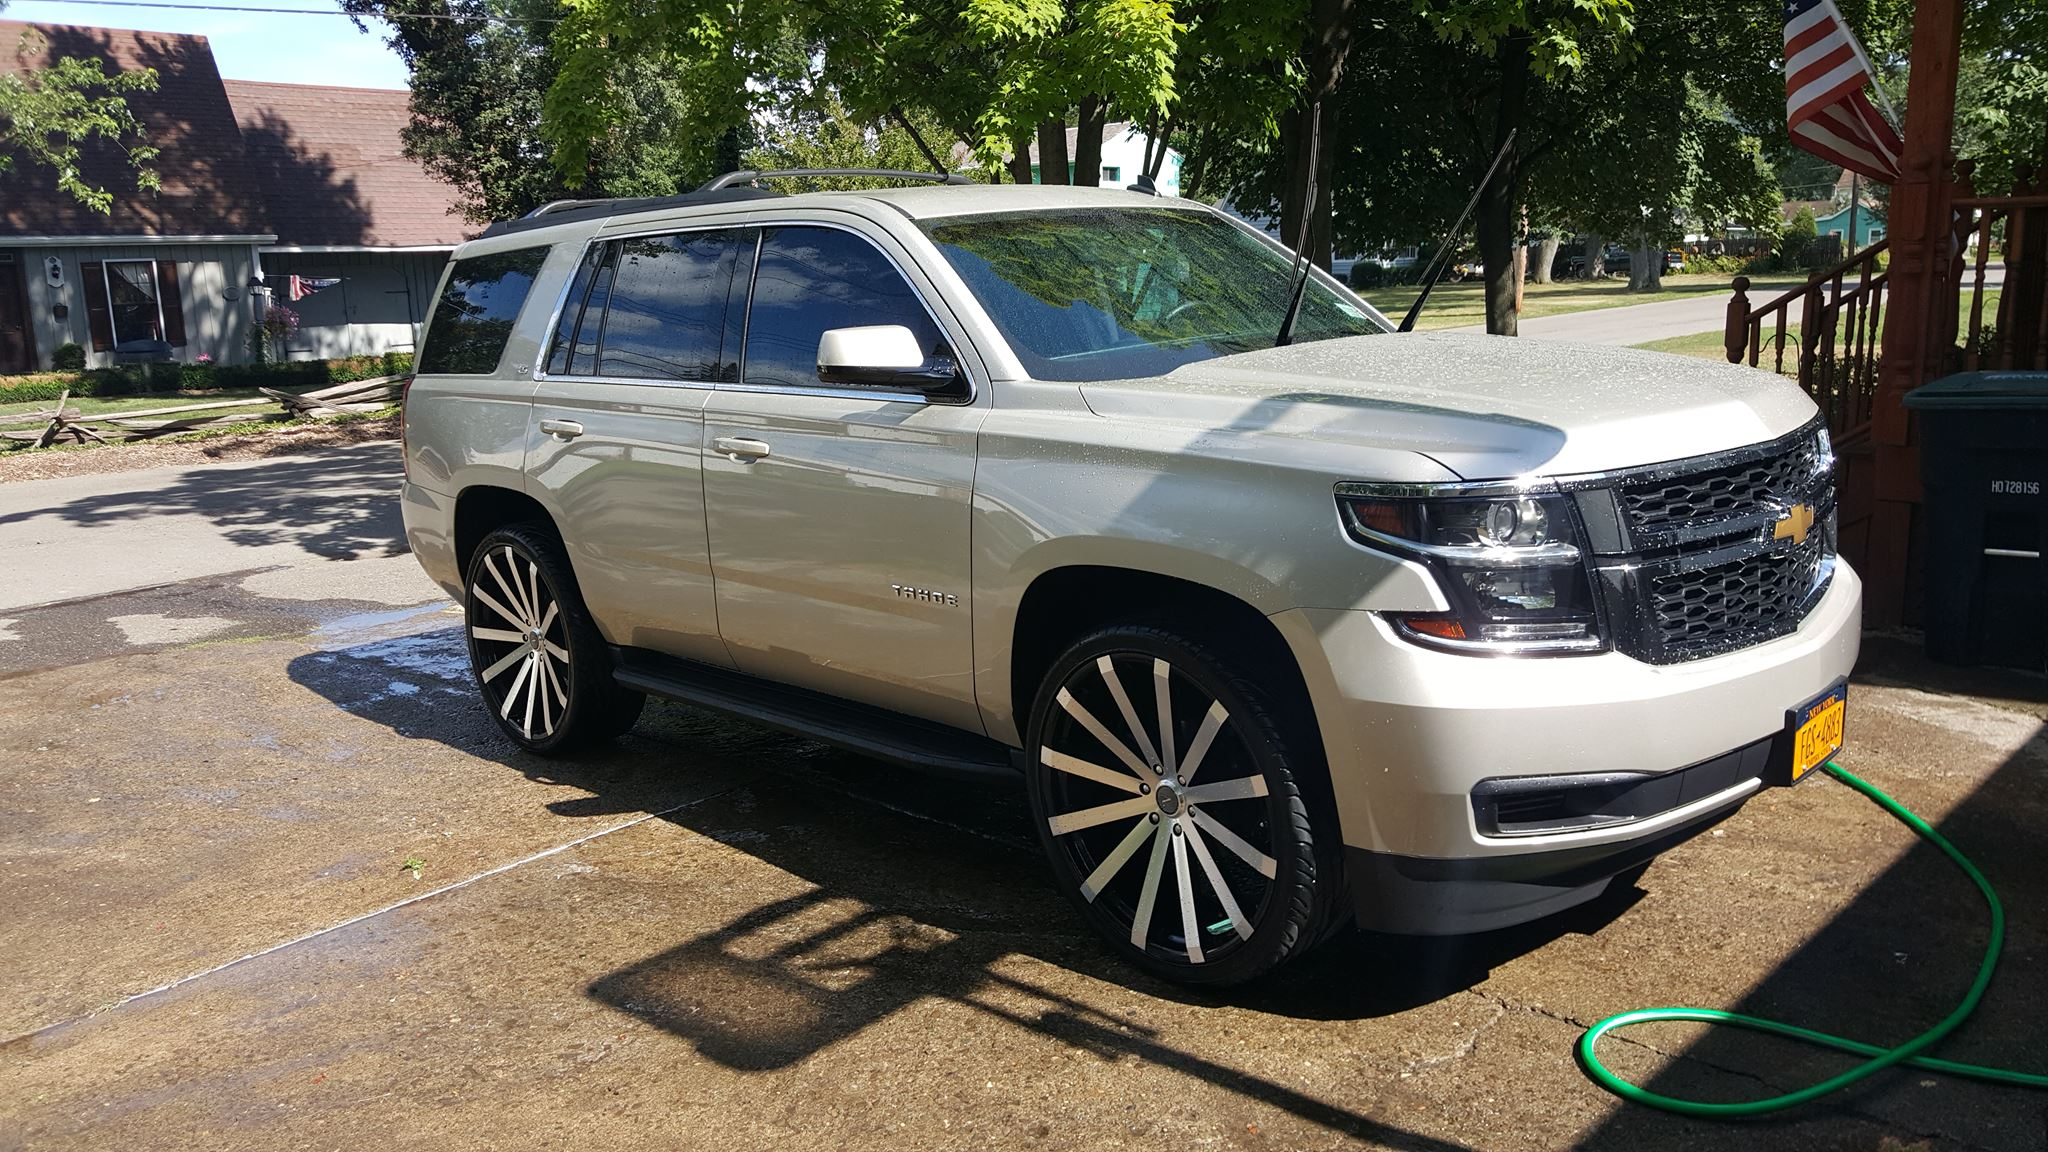 26 Inch Rims : Tahoe on inch velocity vw s big rims custom